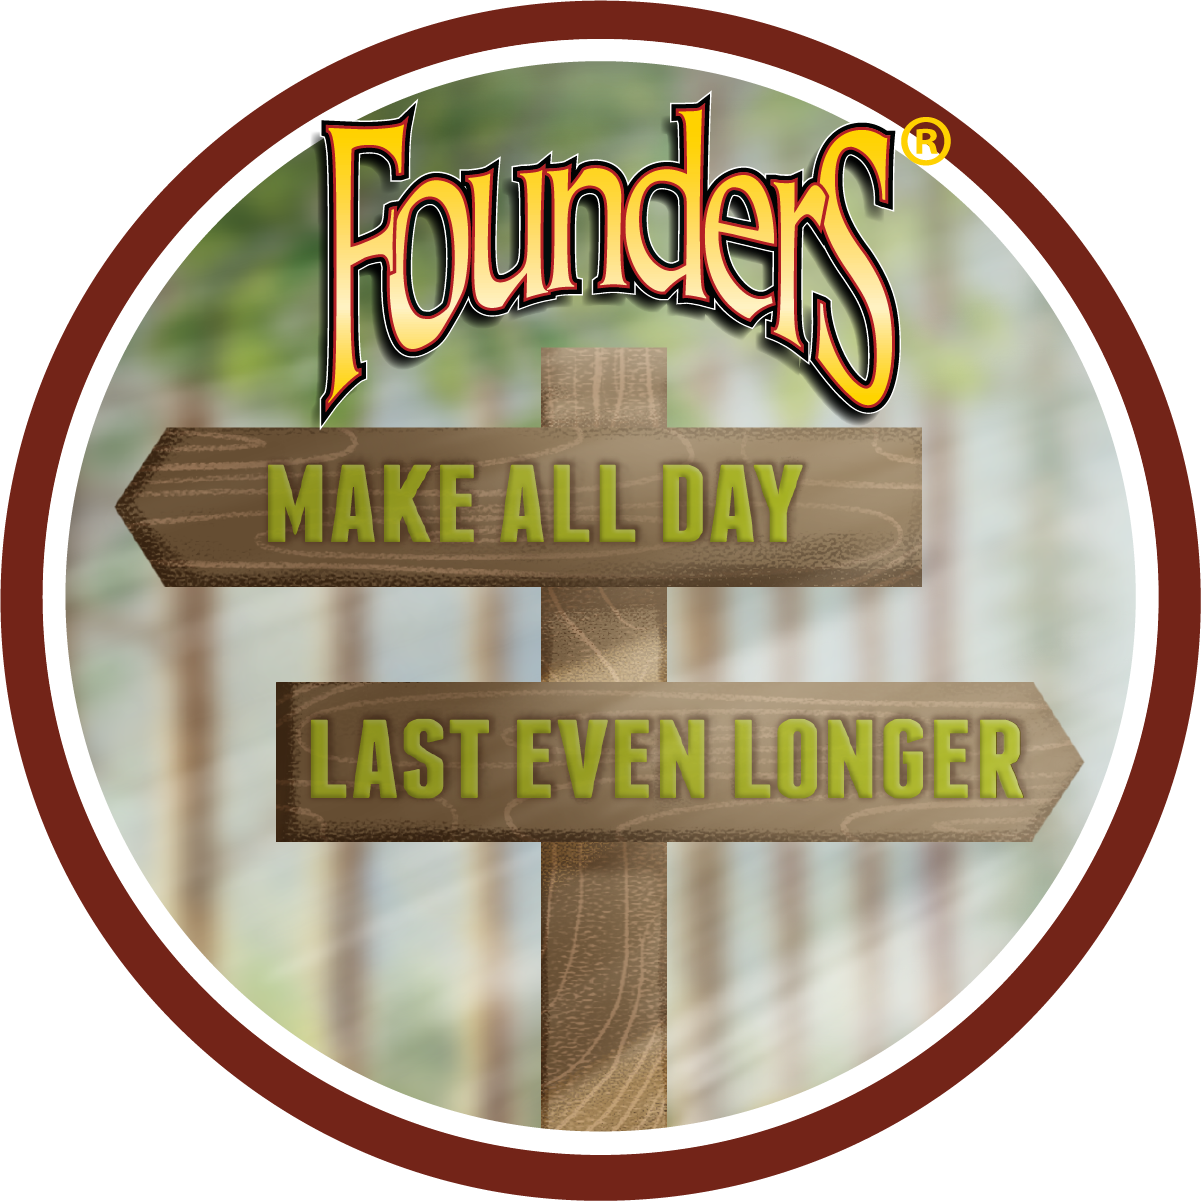 Founders Make All Day Last Even Longer logo